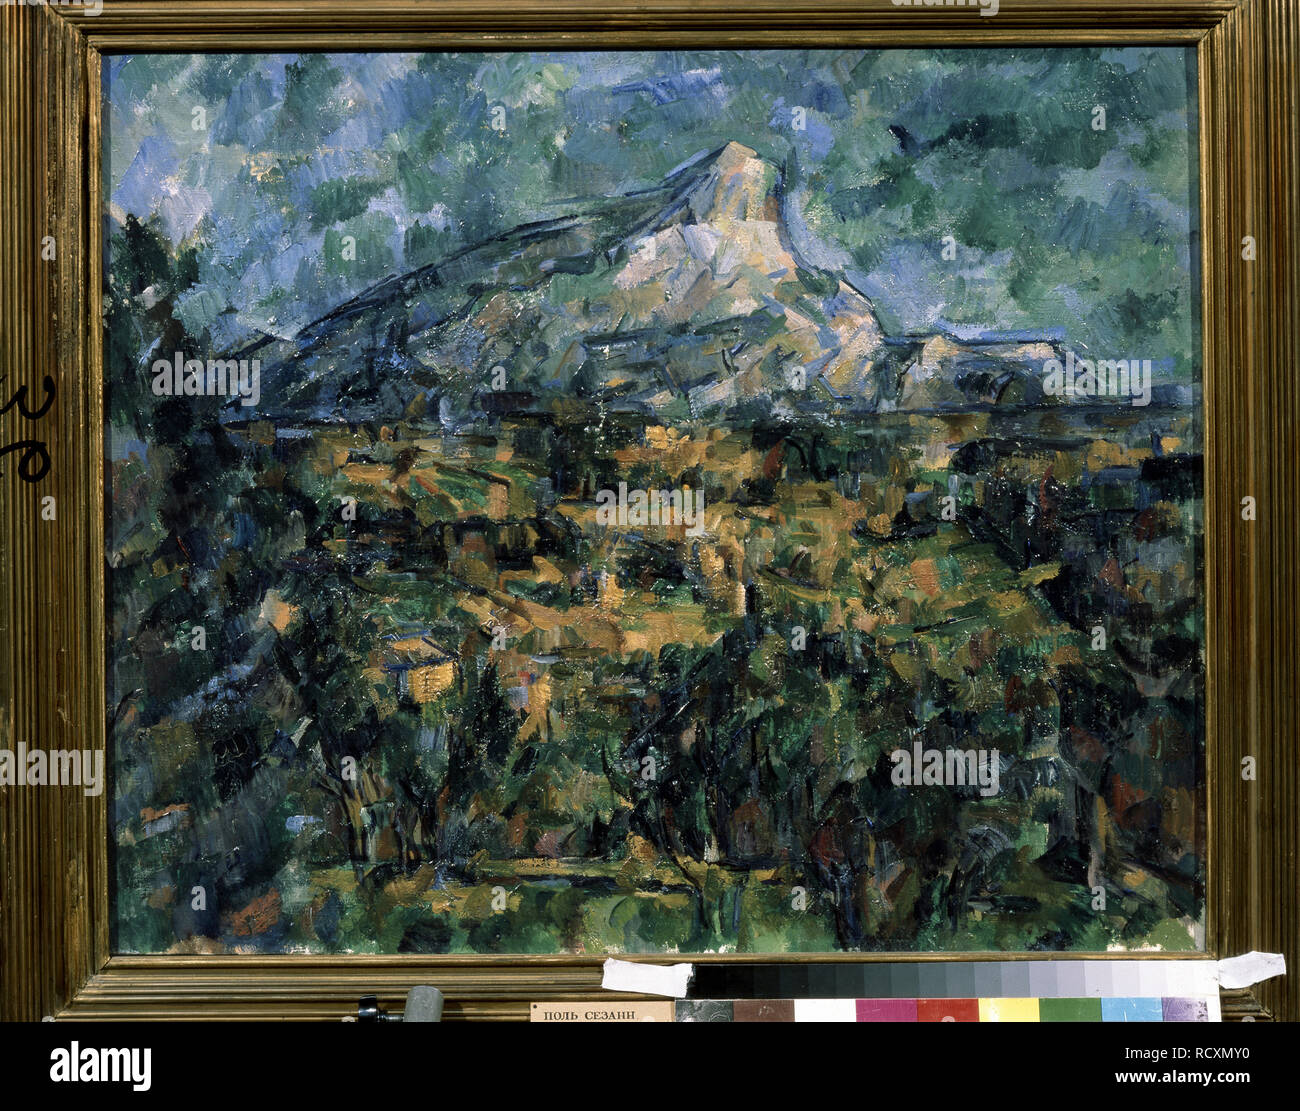 Landscape in Aix (Mont Sainte-Victoire). Museum: State A. Pushkin Museum of Fine Arts, Moscow. Author: CEZANNE, PAUL. Stock Photo